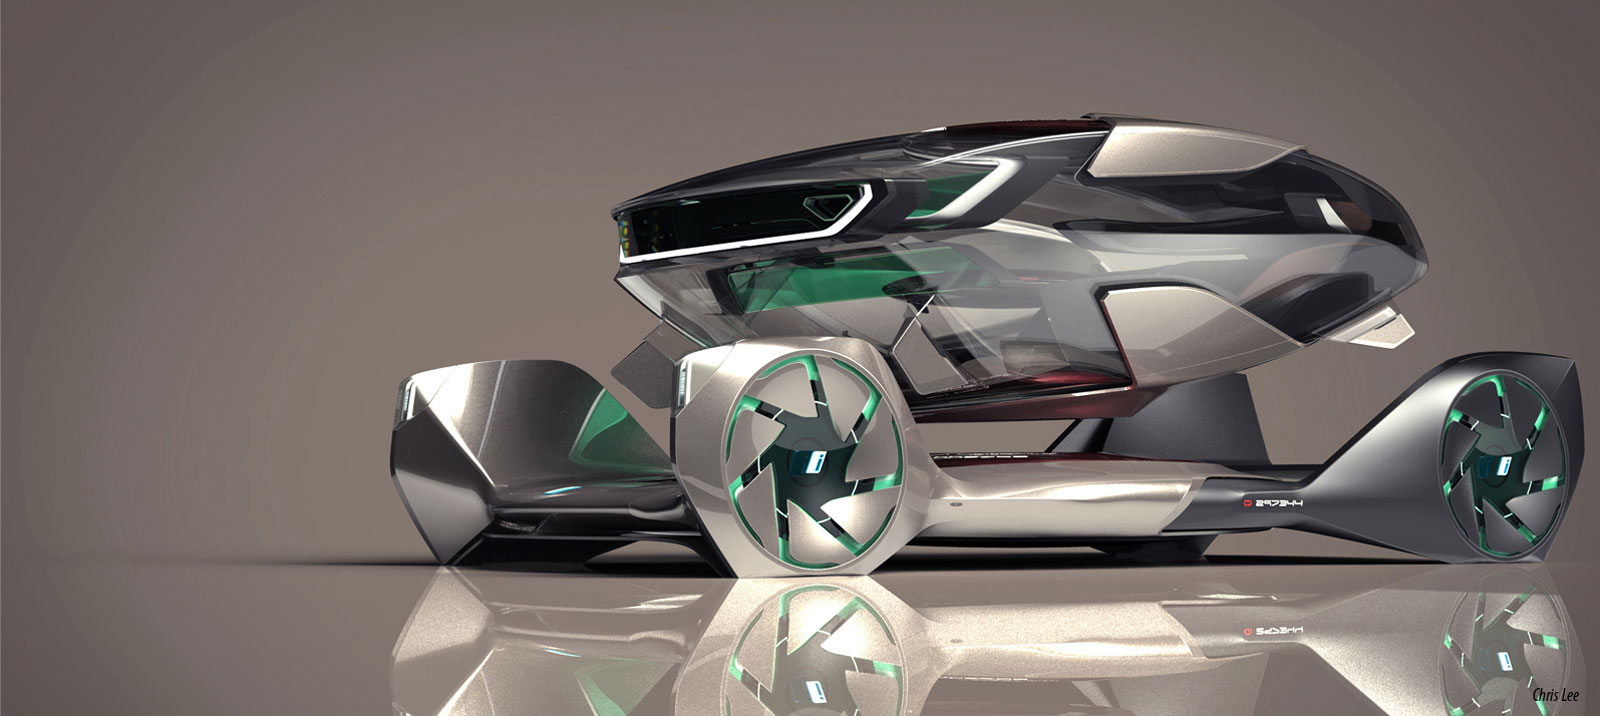 Bmw Iq Concept By Chris Lee Rendering Car Body Design